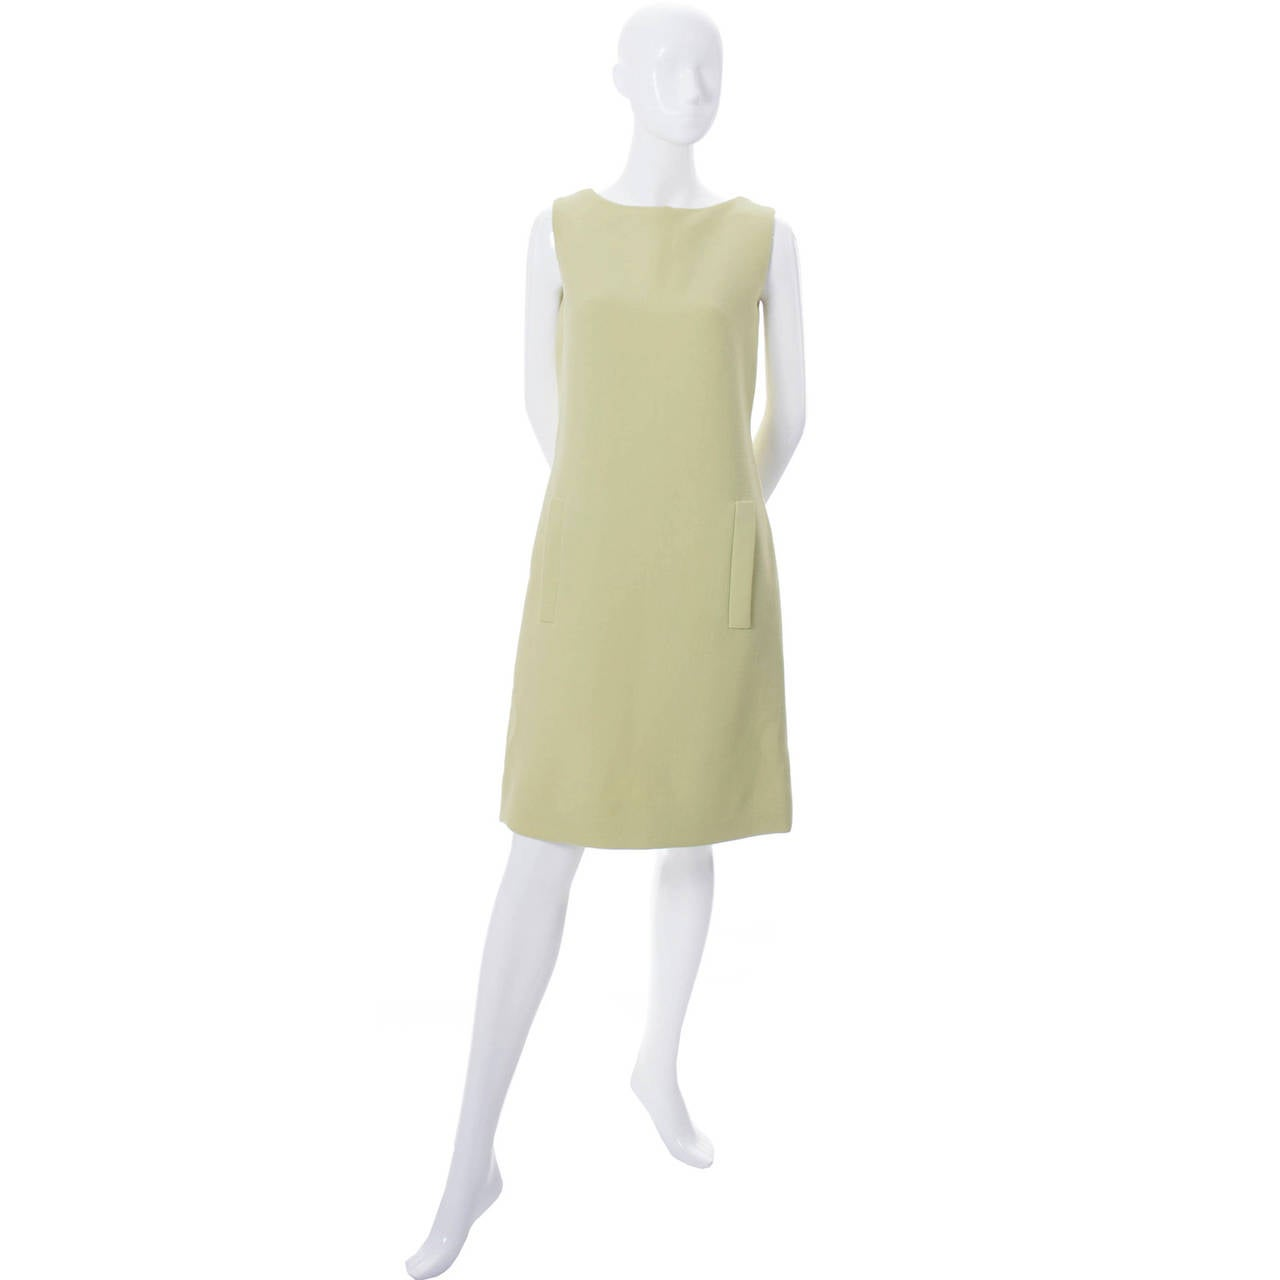 Beige 1960s Vintage Norman Norell Sleeveless Green Shift Dress For Sale